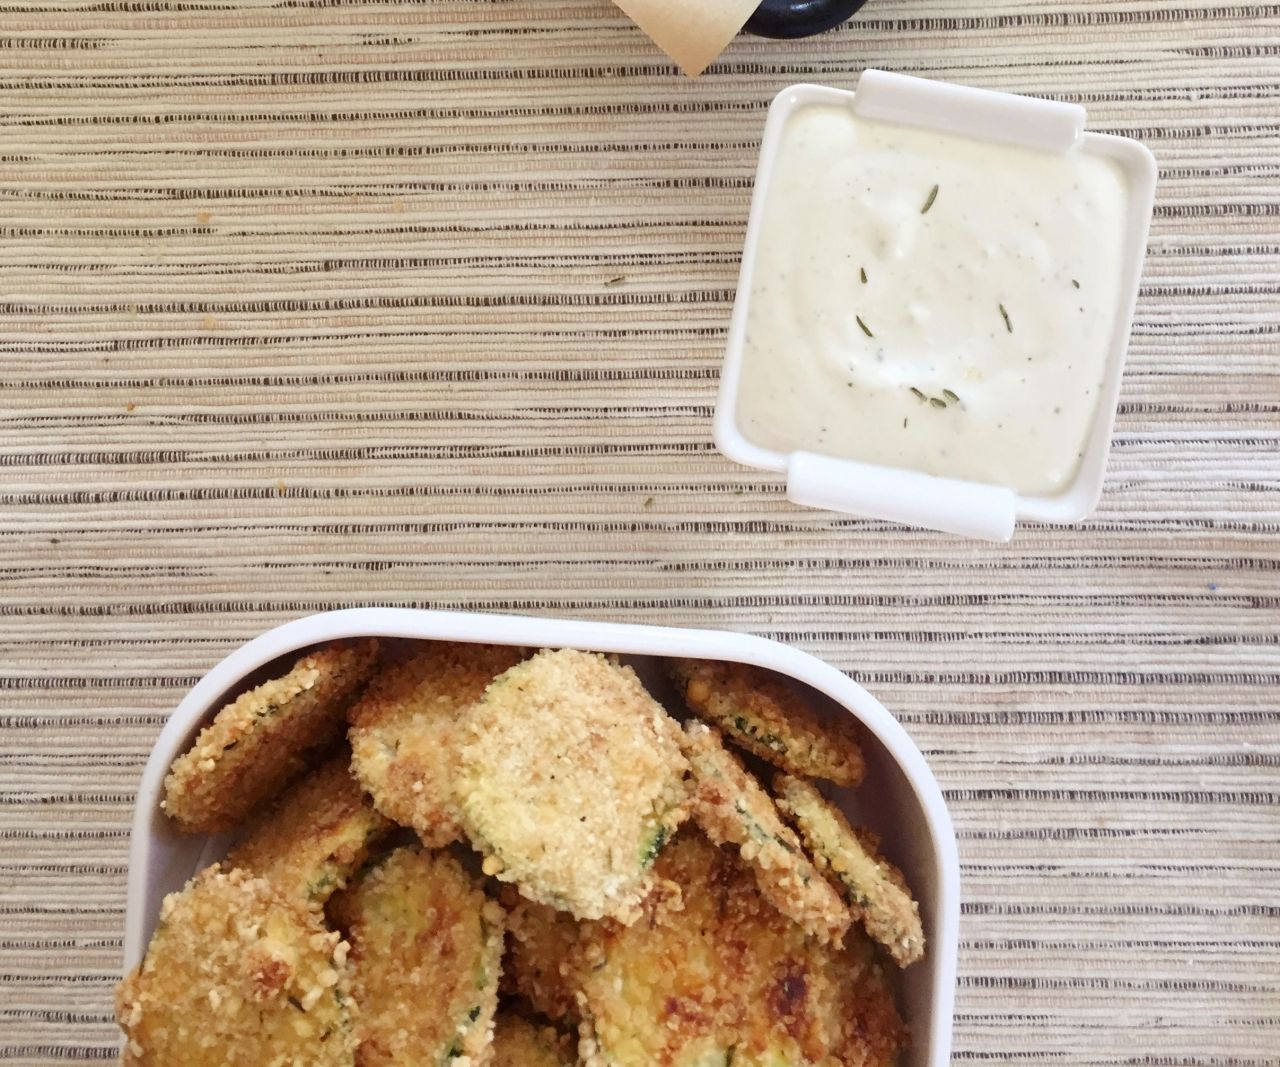 Zucchini parmesan chips with feta sauce (gluten free)